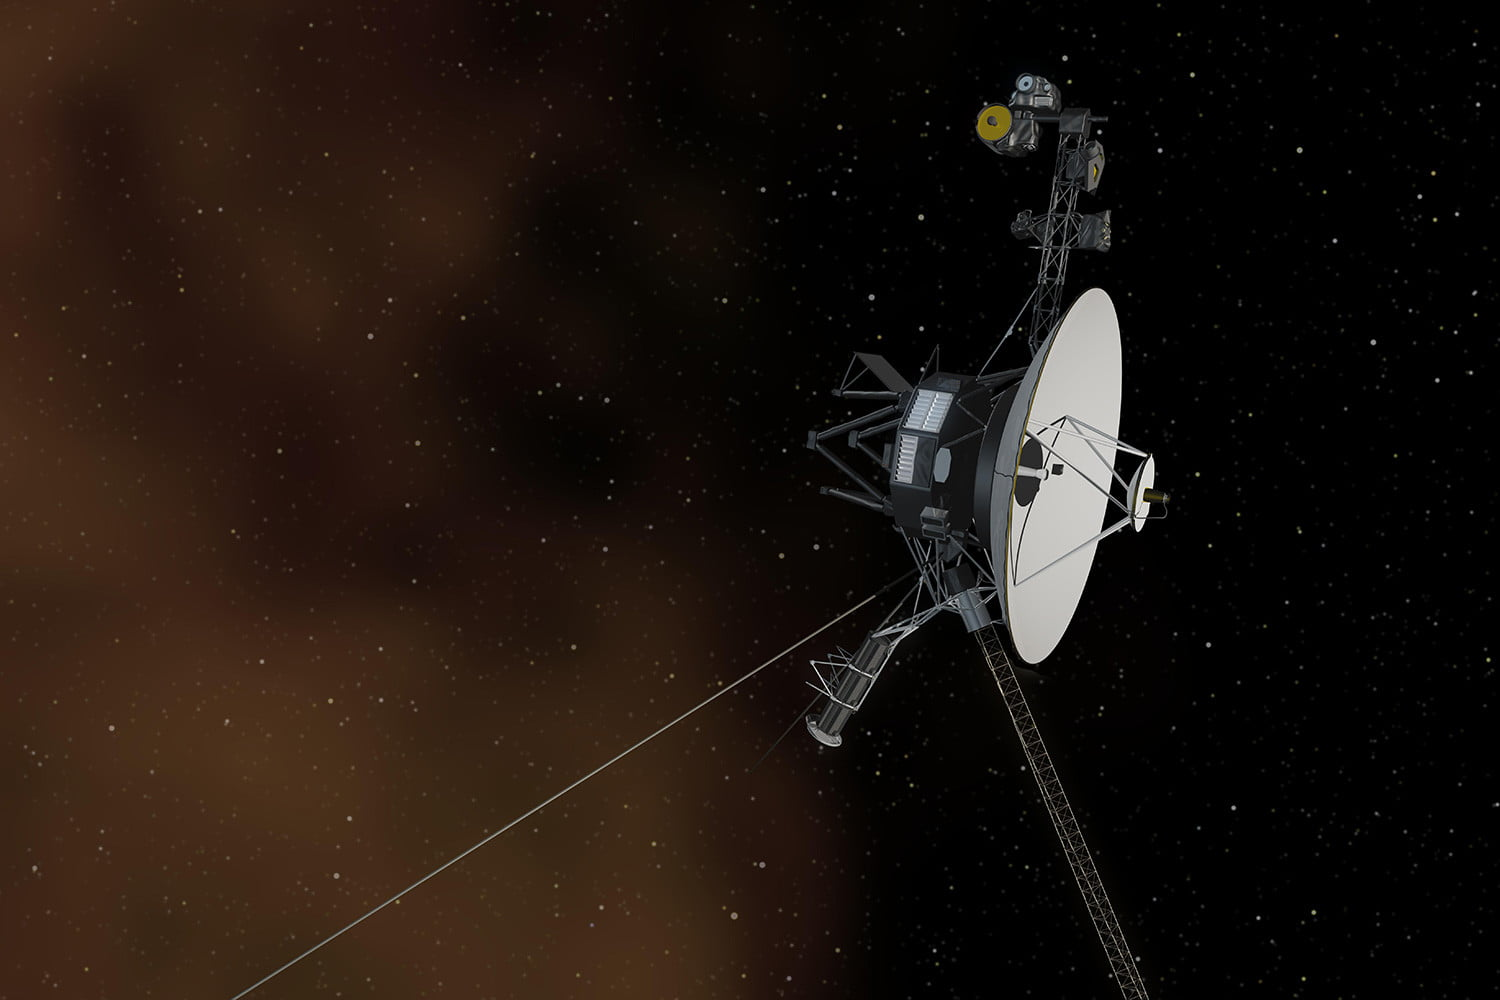 Voyager 1 Spacecraft Data Translated into a Musical Score ...